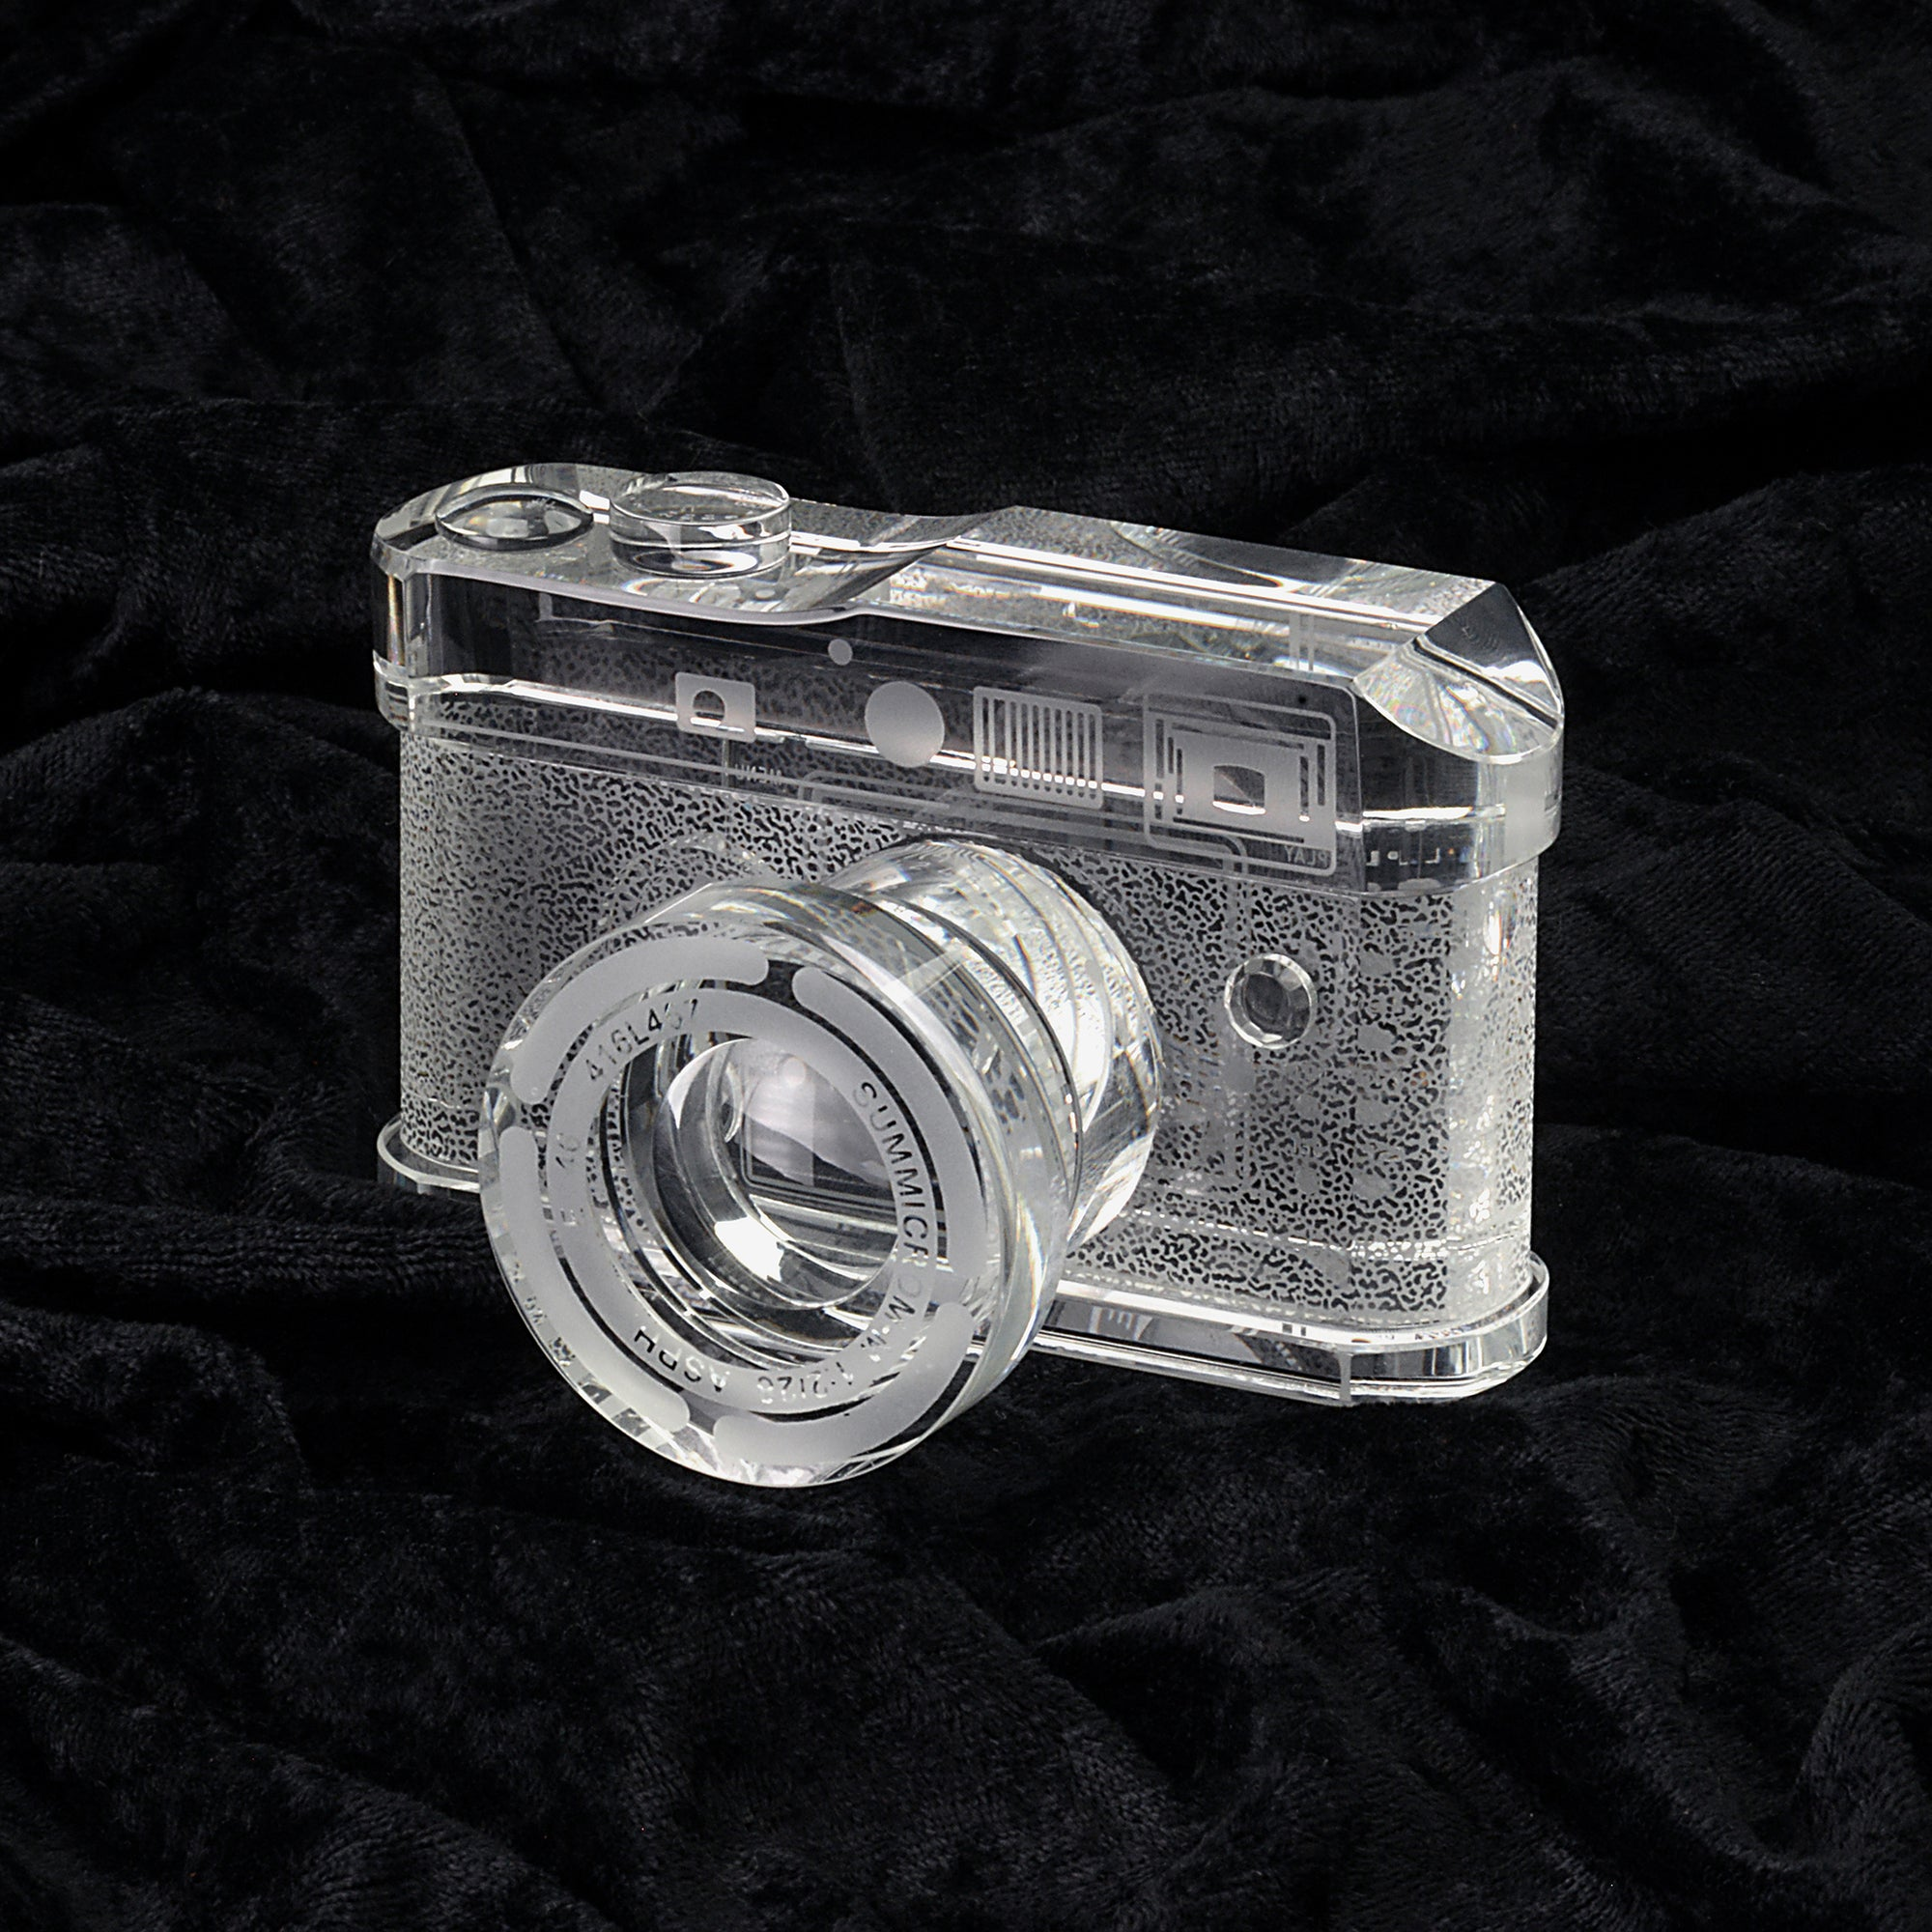 Crystal Glass Replica of the Leica M9 camera